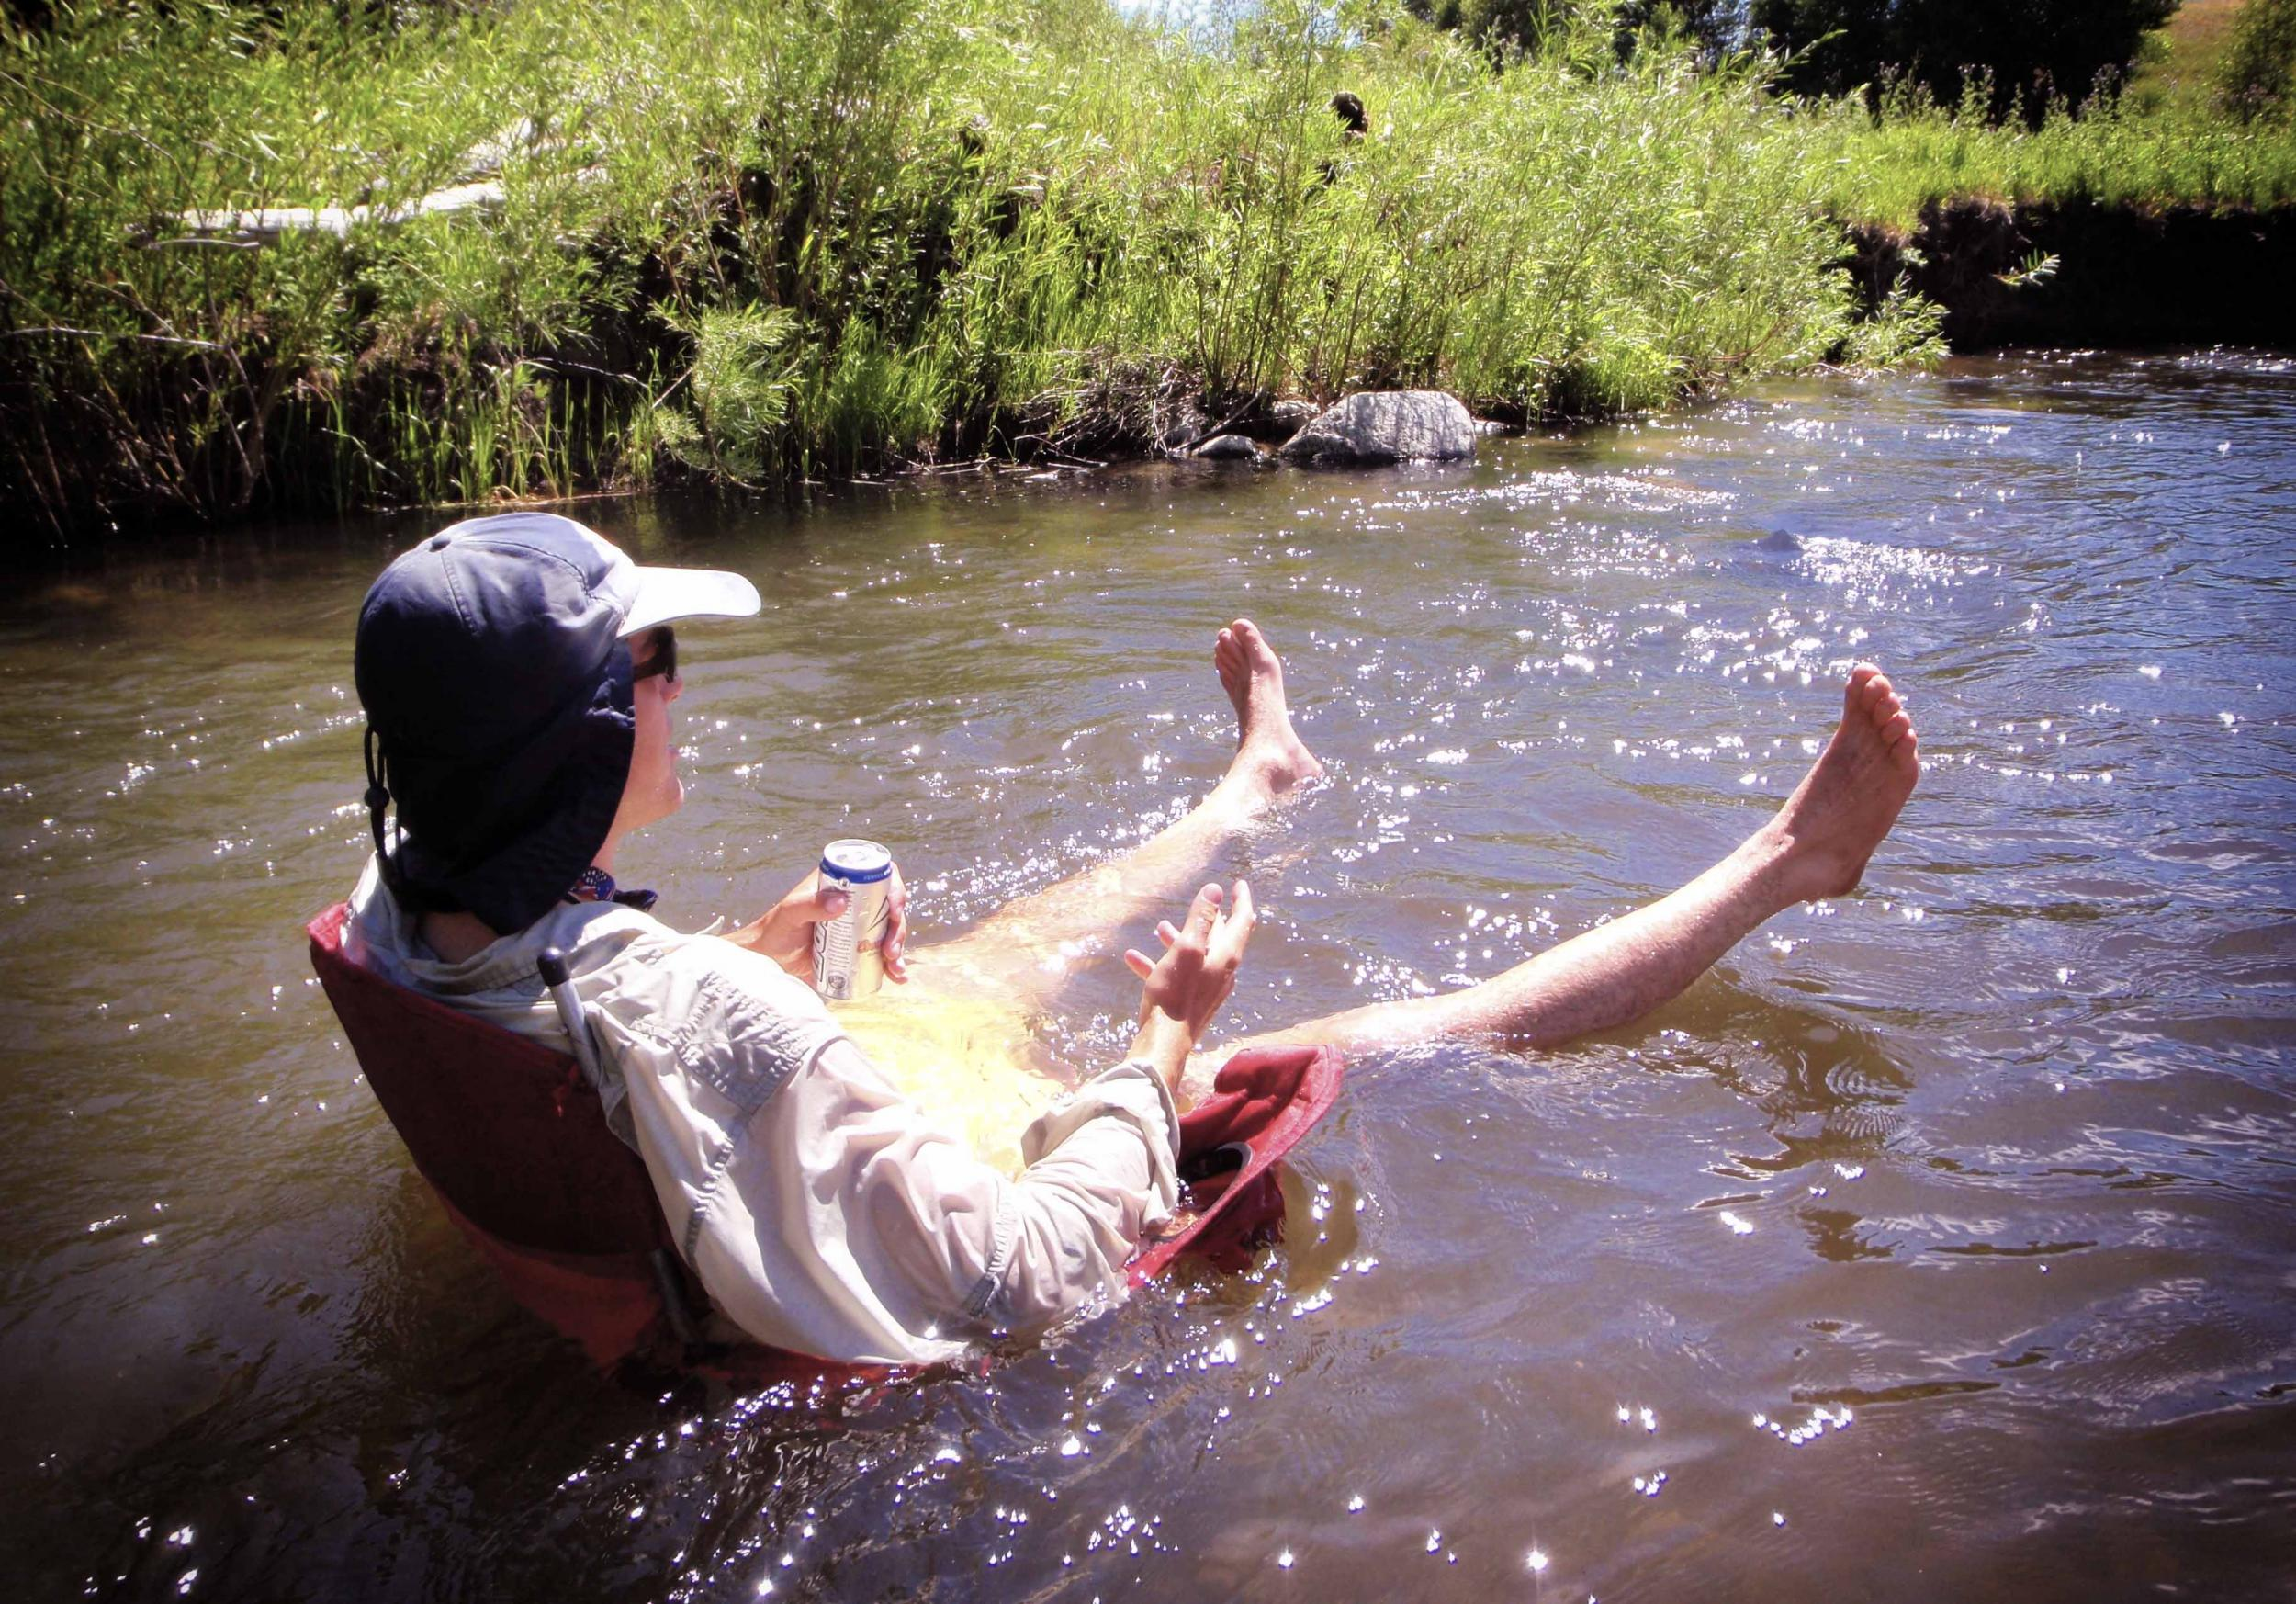 Fishing Guide Trip Lifetime Angler Fly Fishing Private Fun Instruction